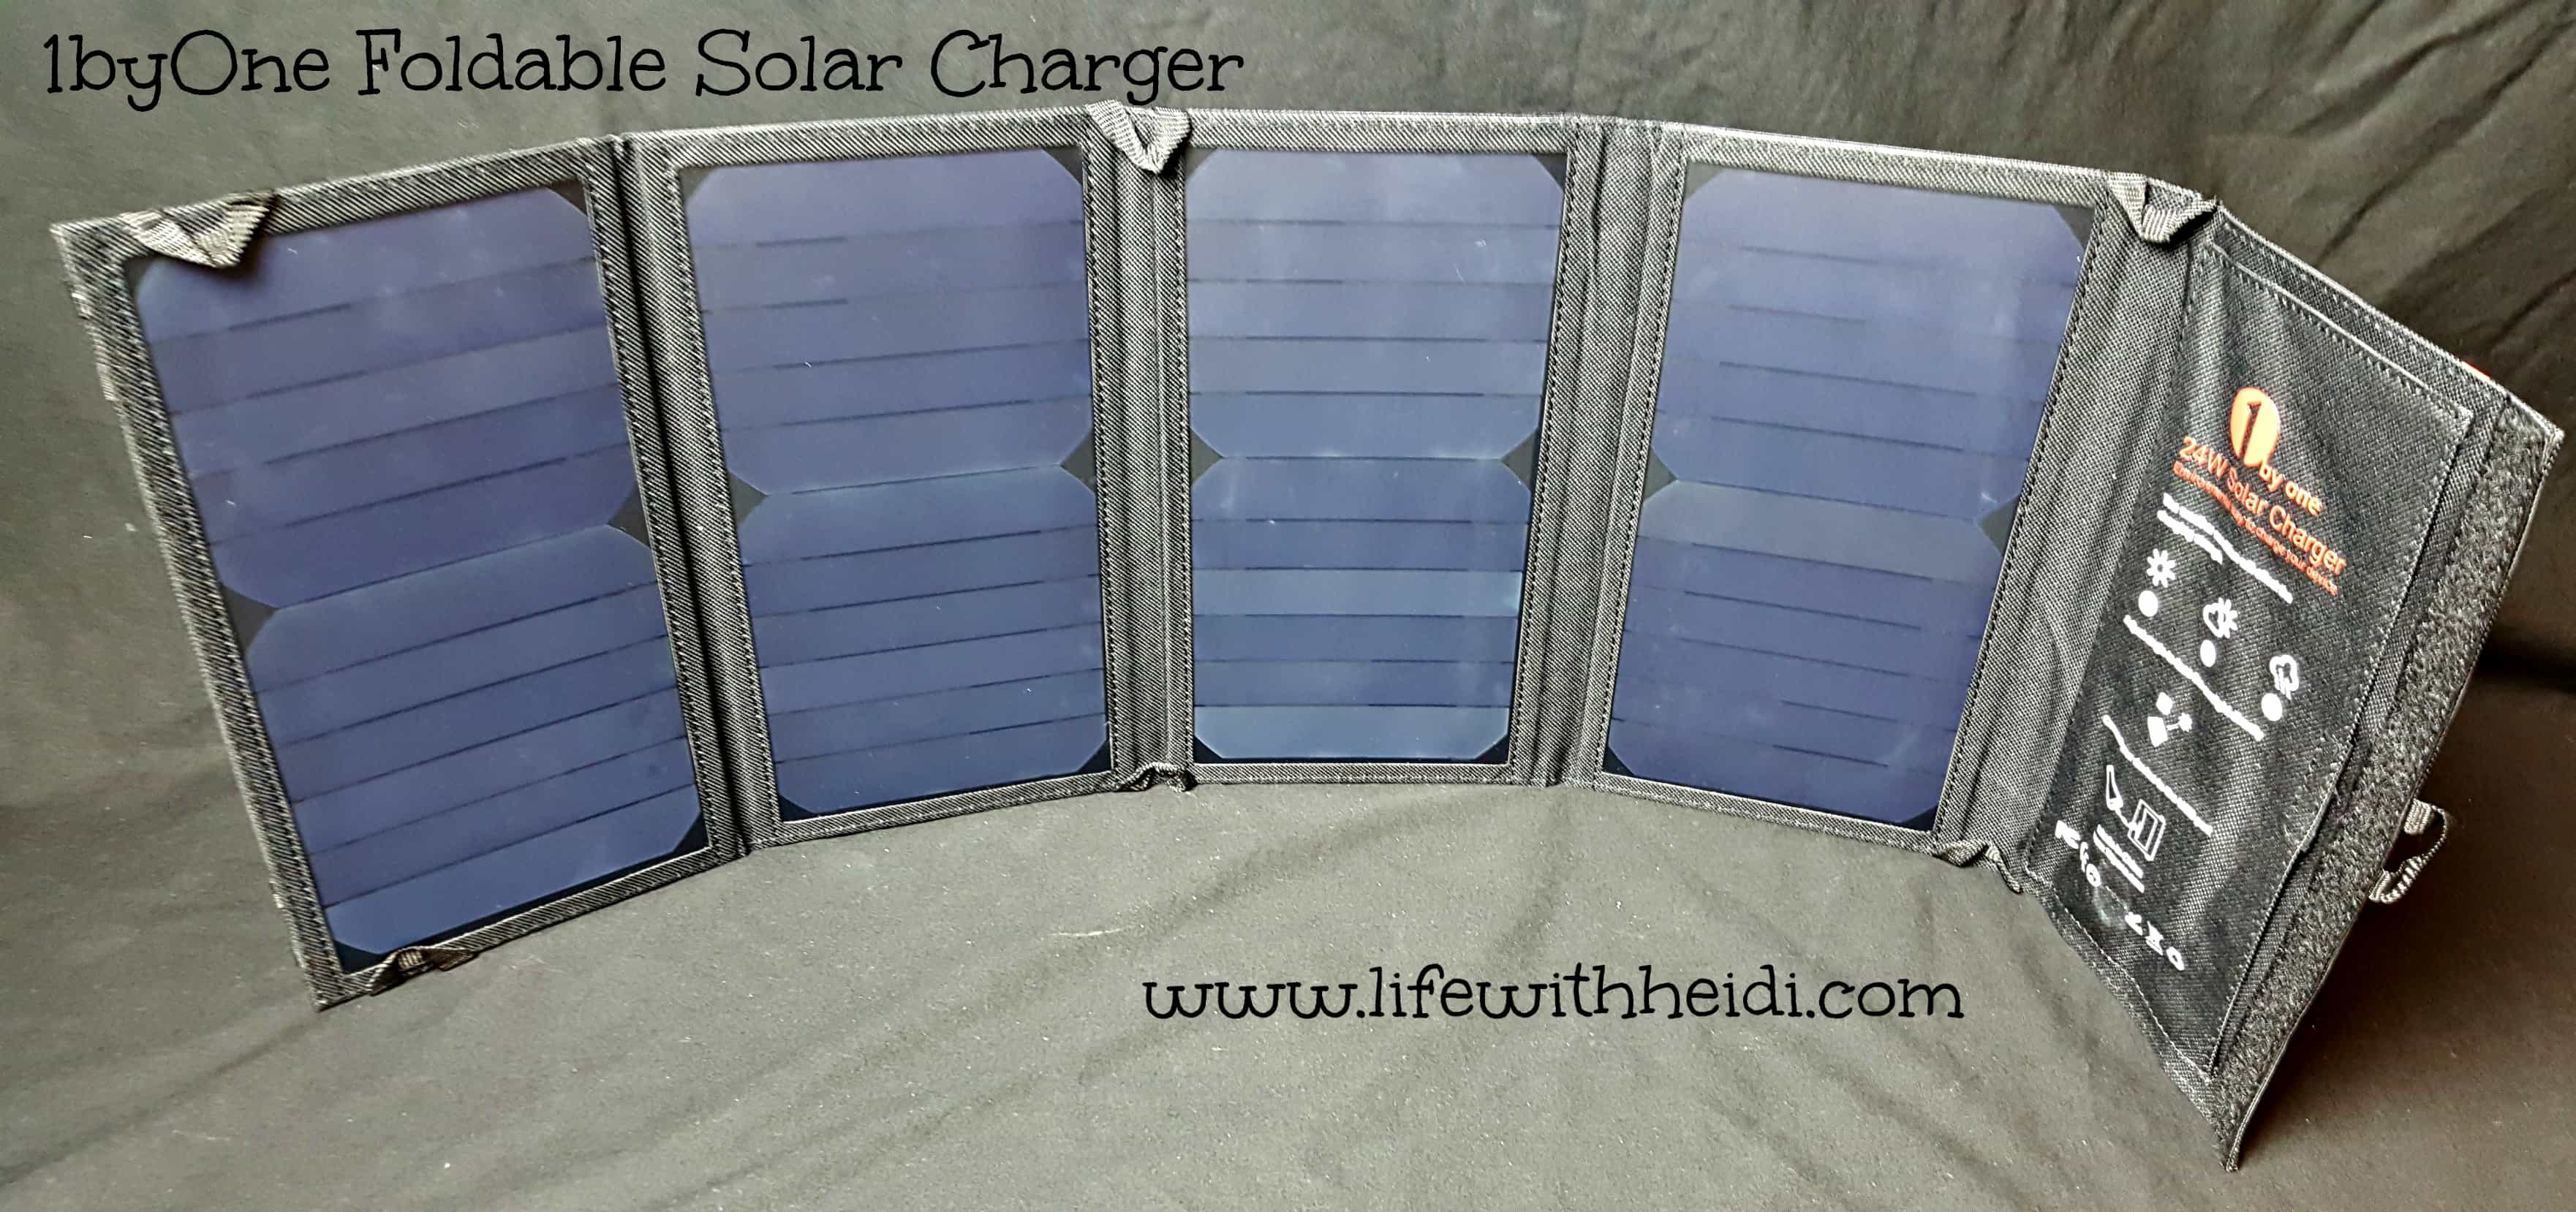 1byOne Foldable Solar Charger